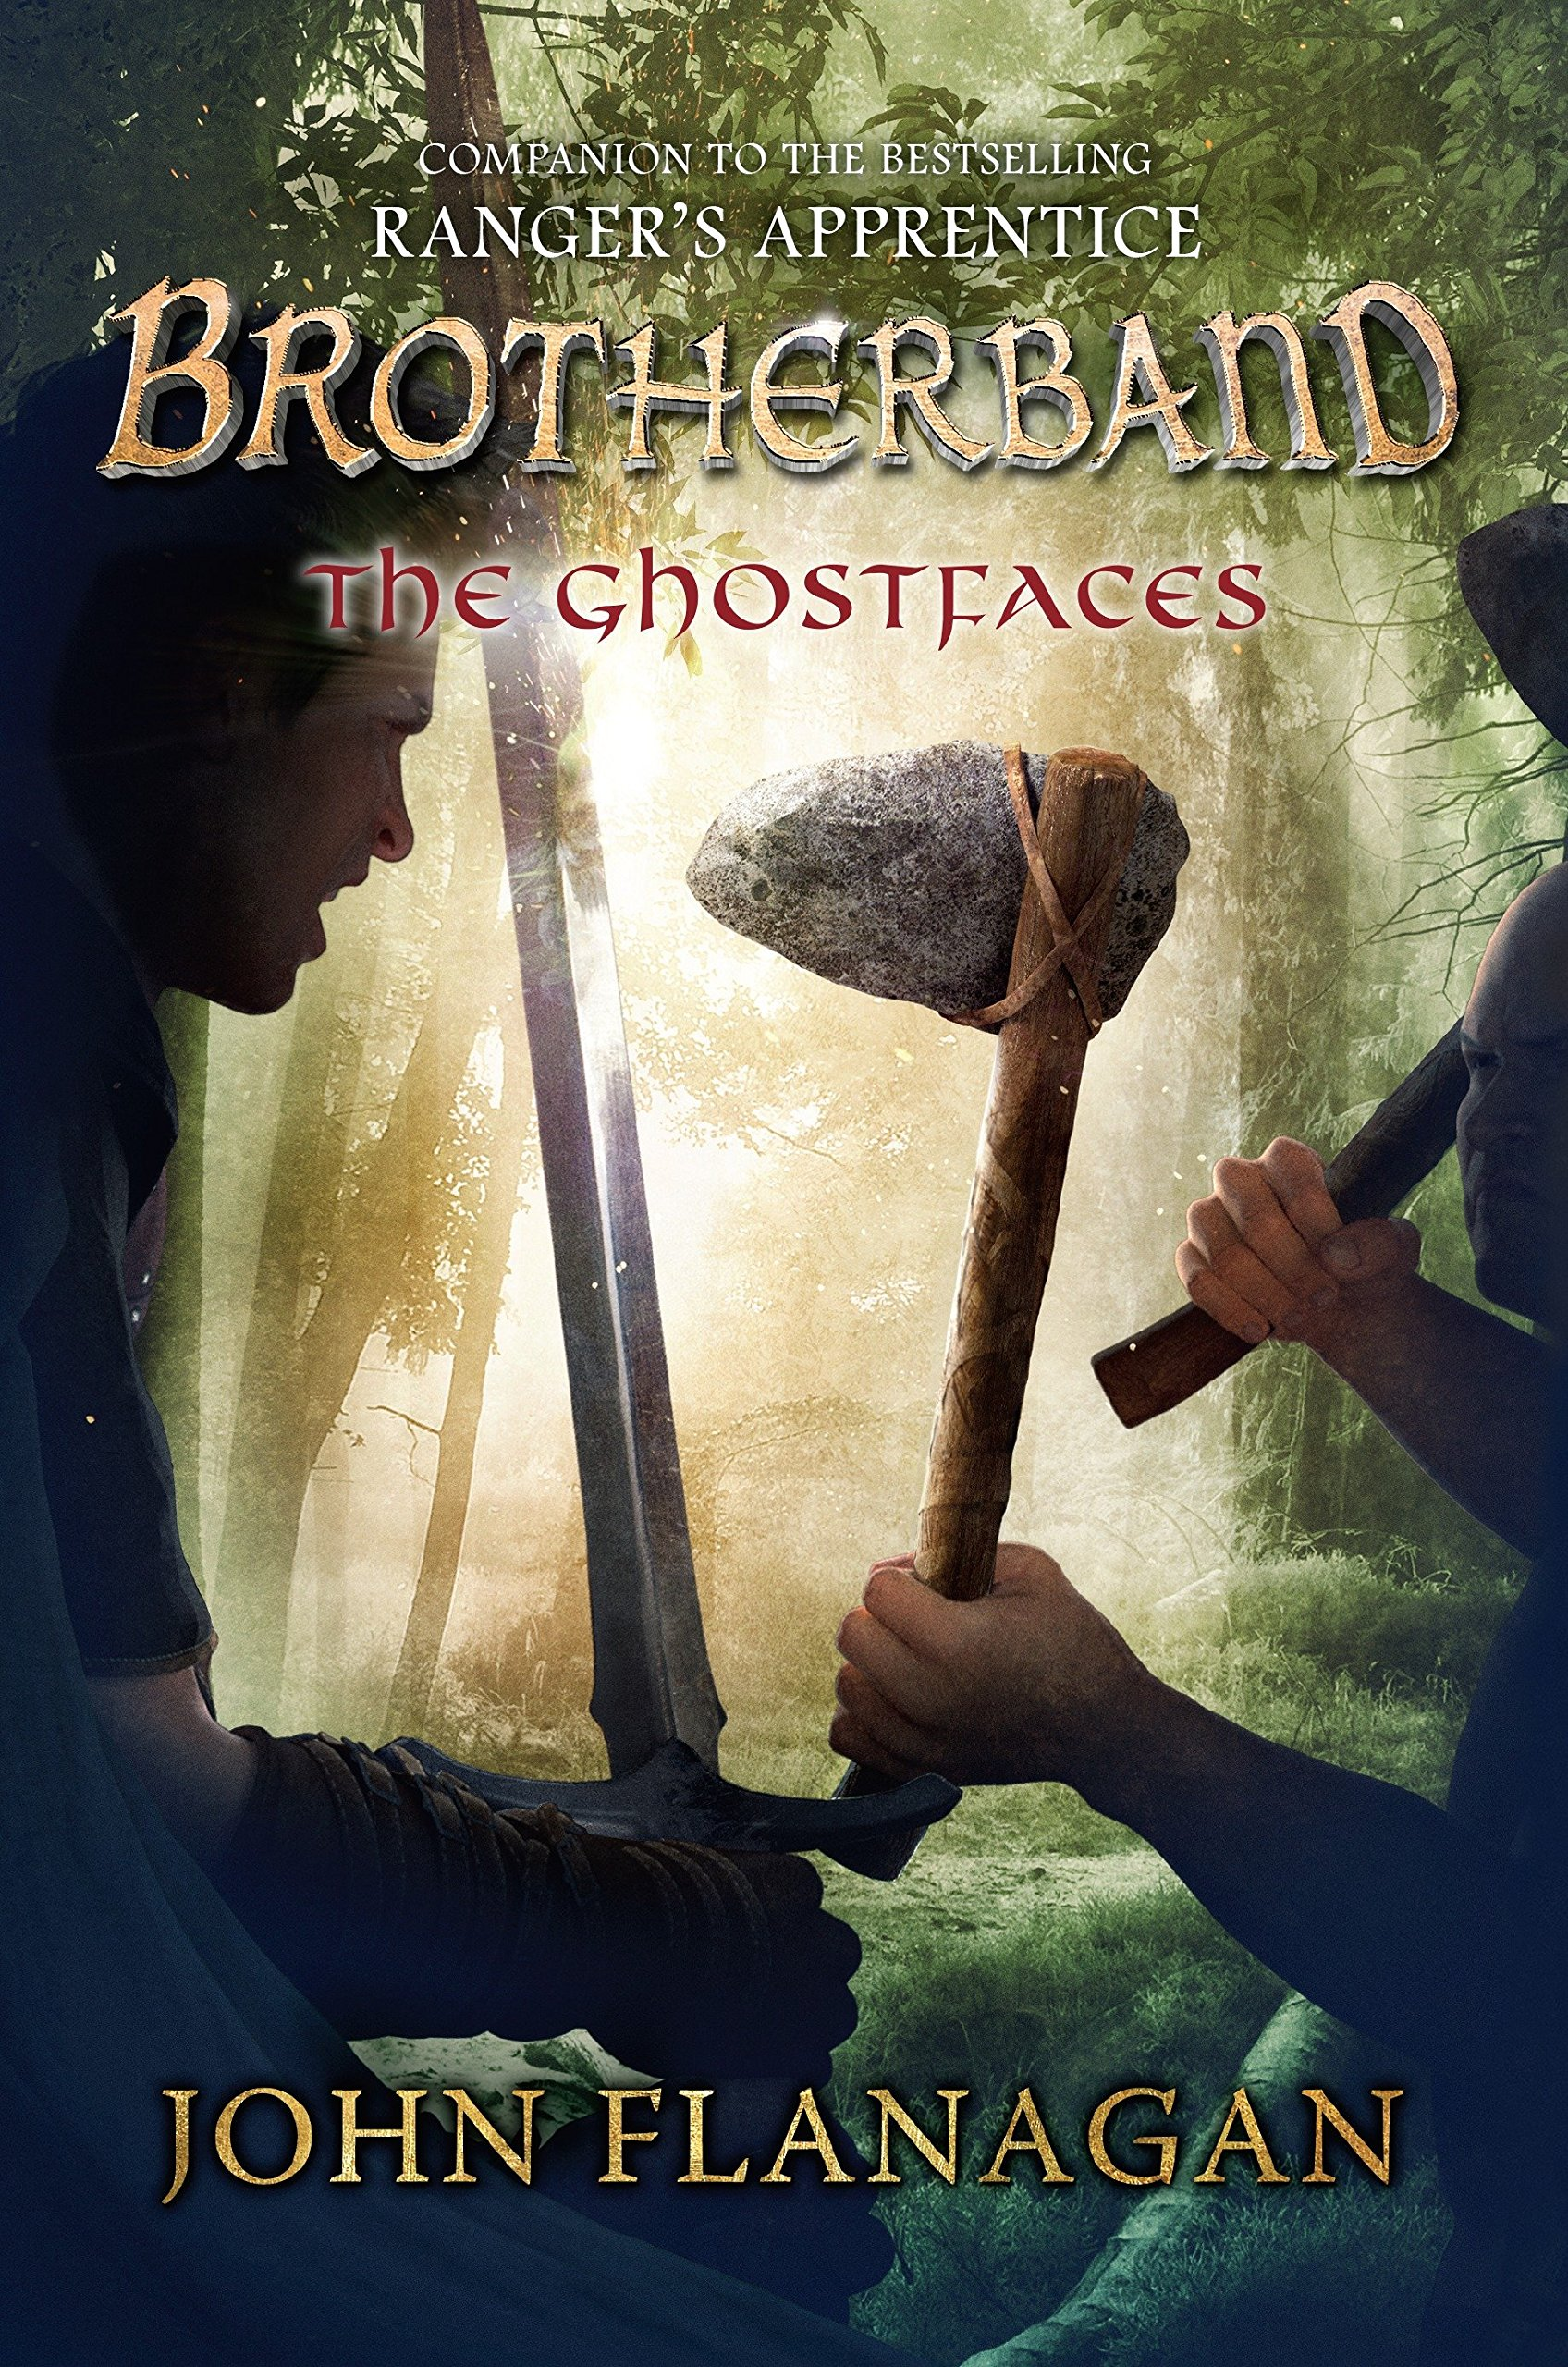 The Ghostfaces (The Brotherband Chronicles) ebook